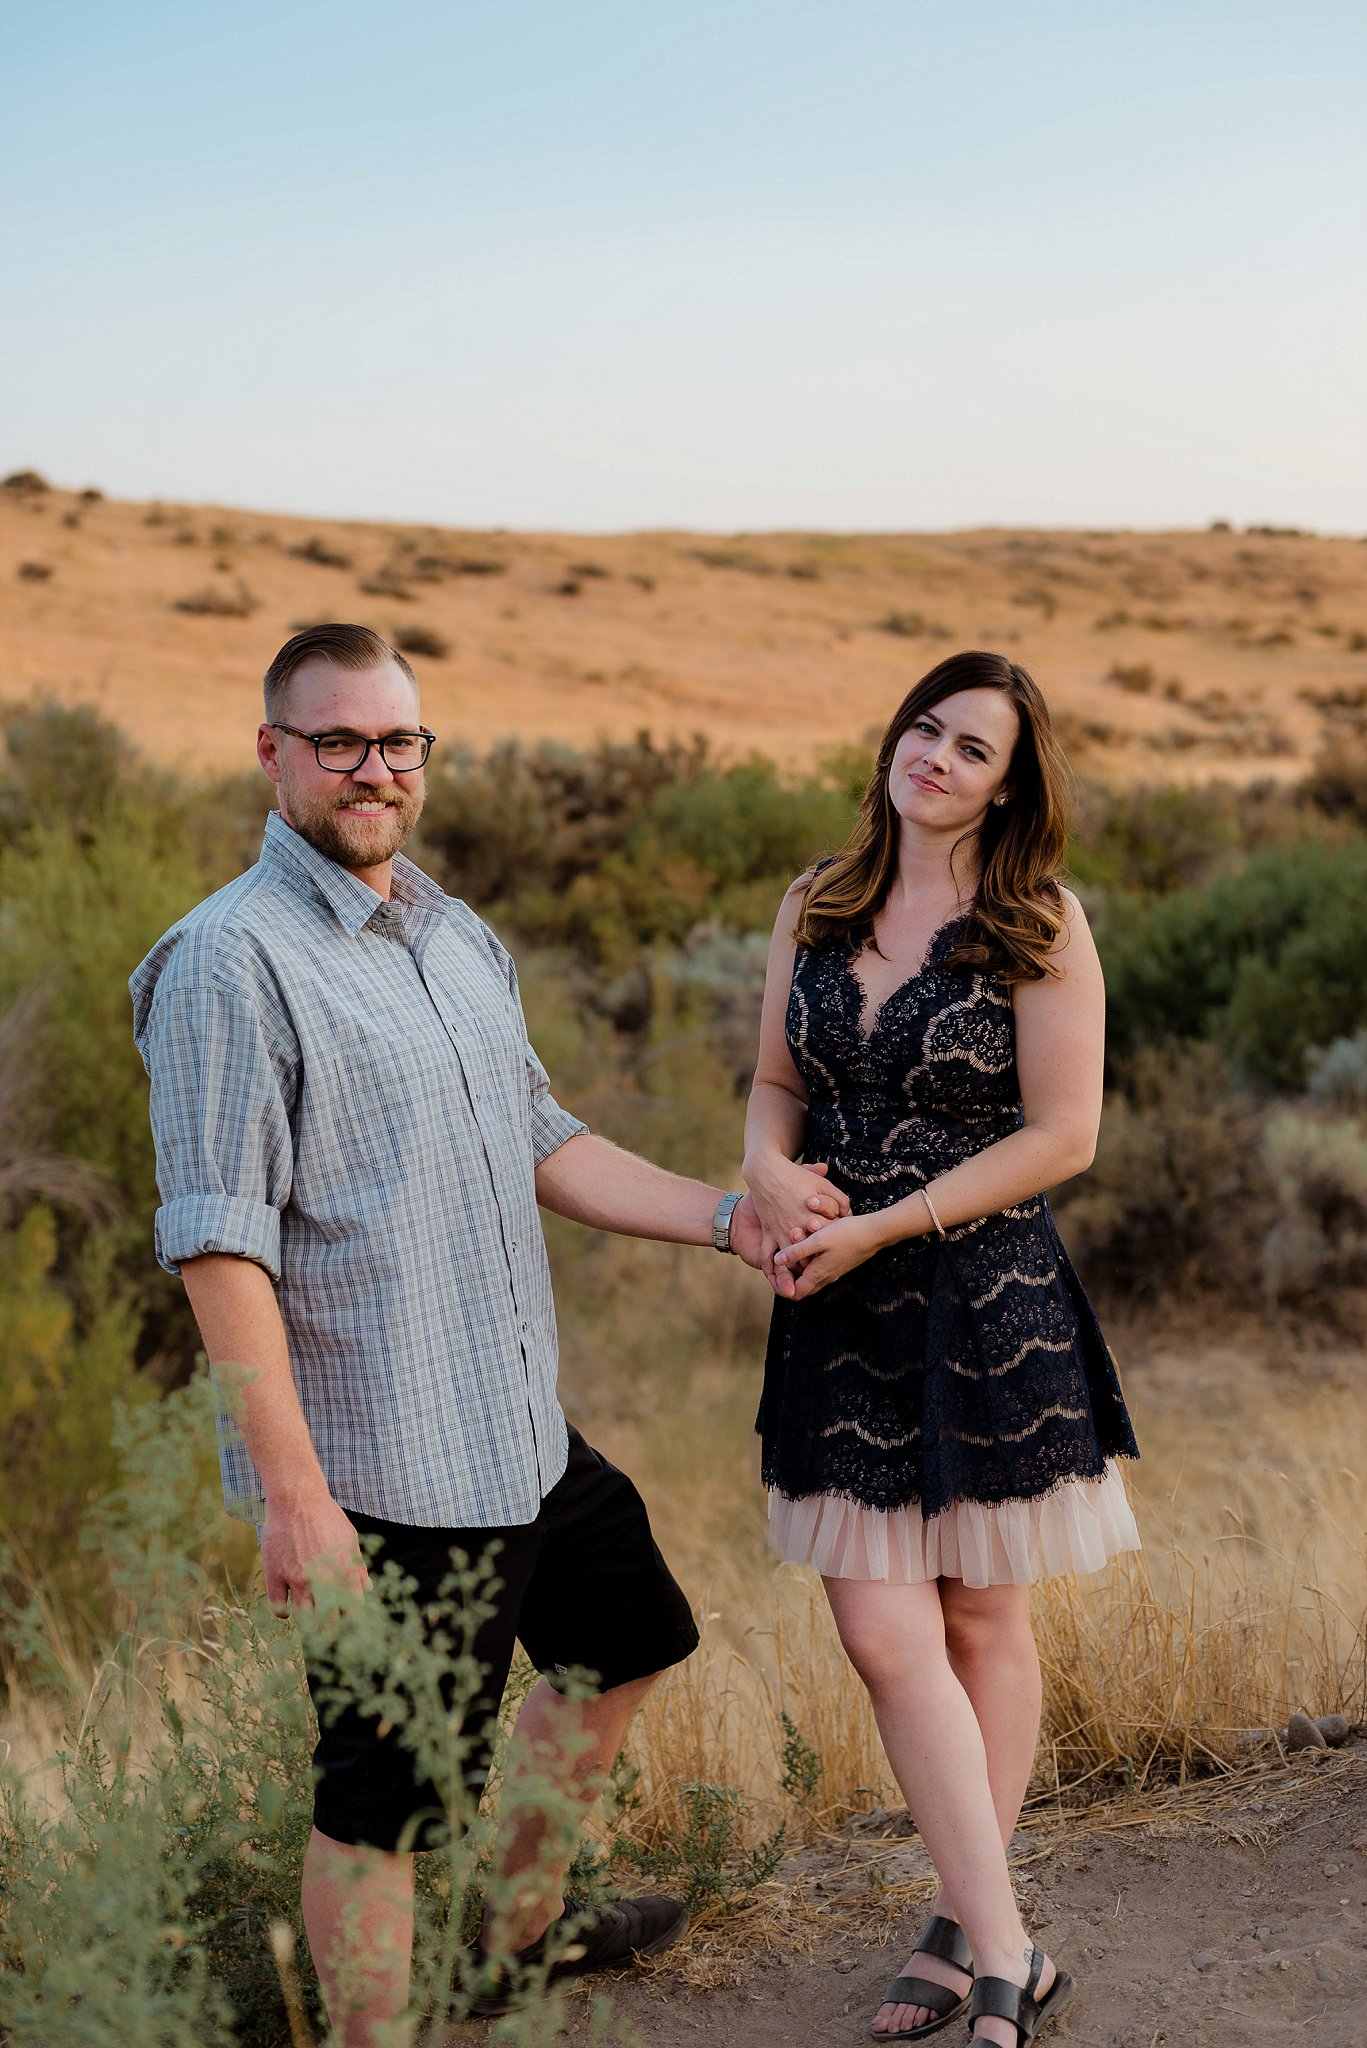 Zilla Photography - Boise Foothills Date Night Couple Session-15_SM.jpg